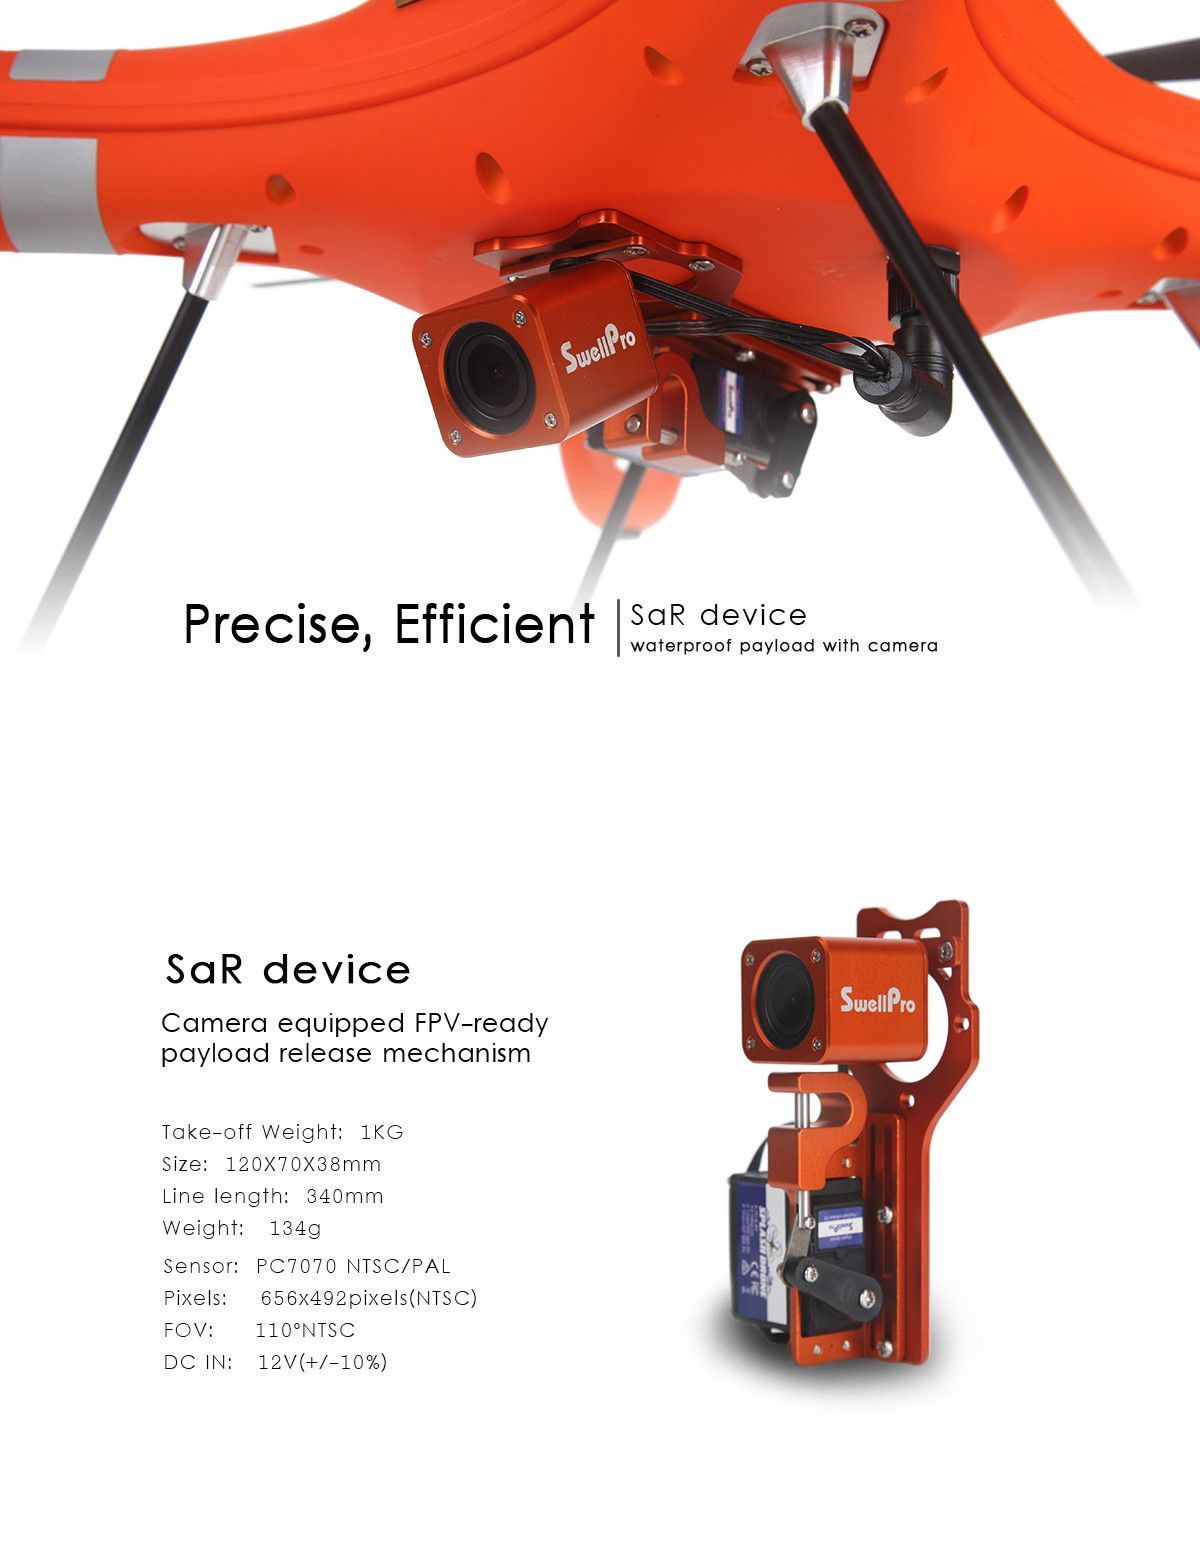 Drone Payload Release Mechanism With Fpv Camera For Splash In Naza Osd Wiring Diagram Search And Rescue Device Sar Equipped Ready Dispenser